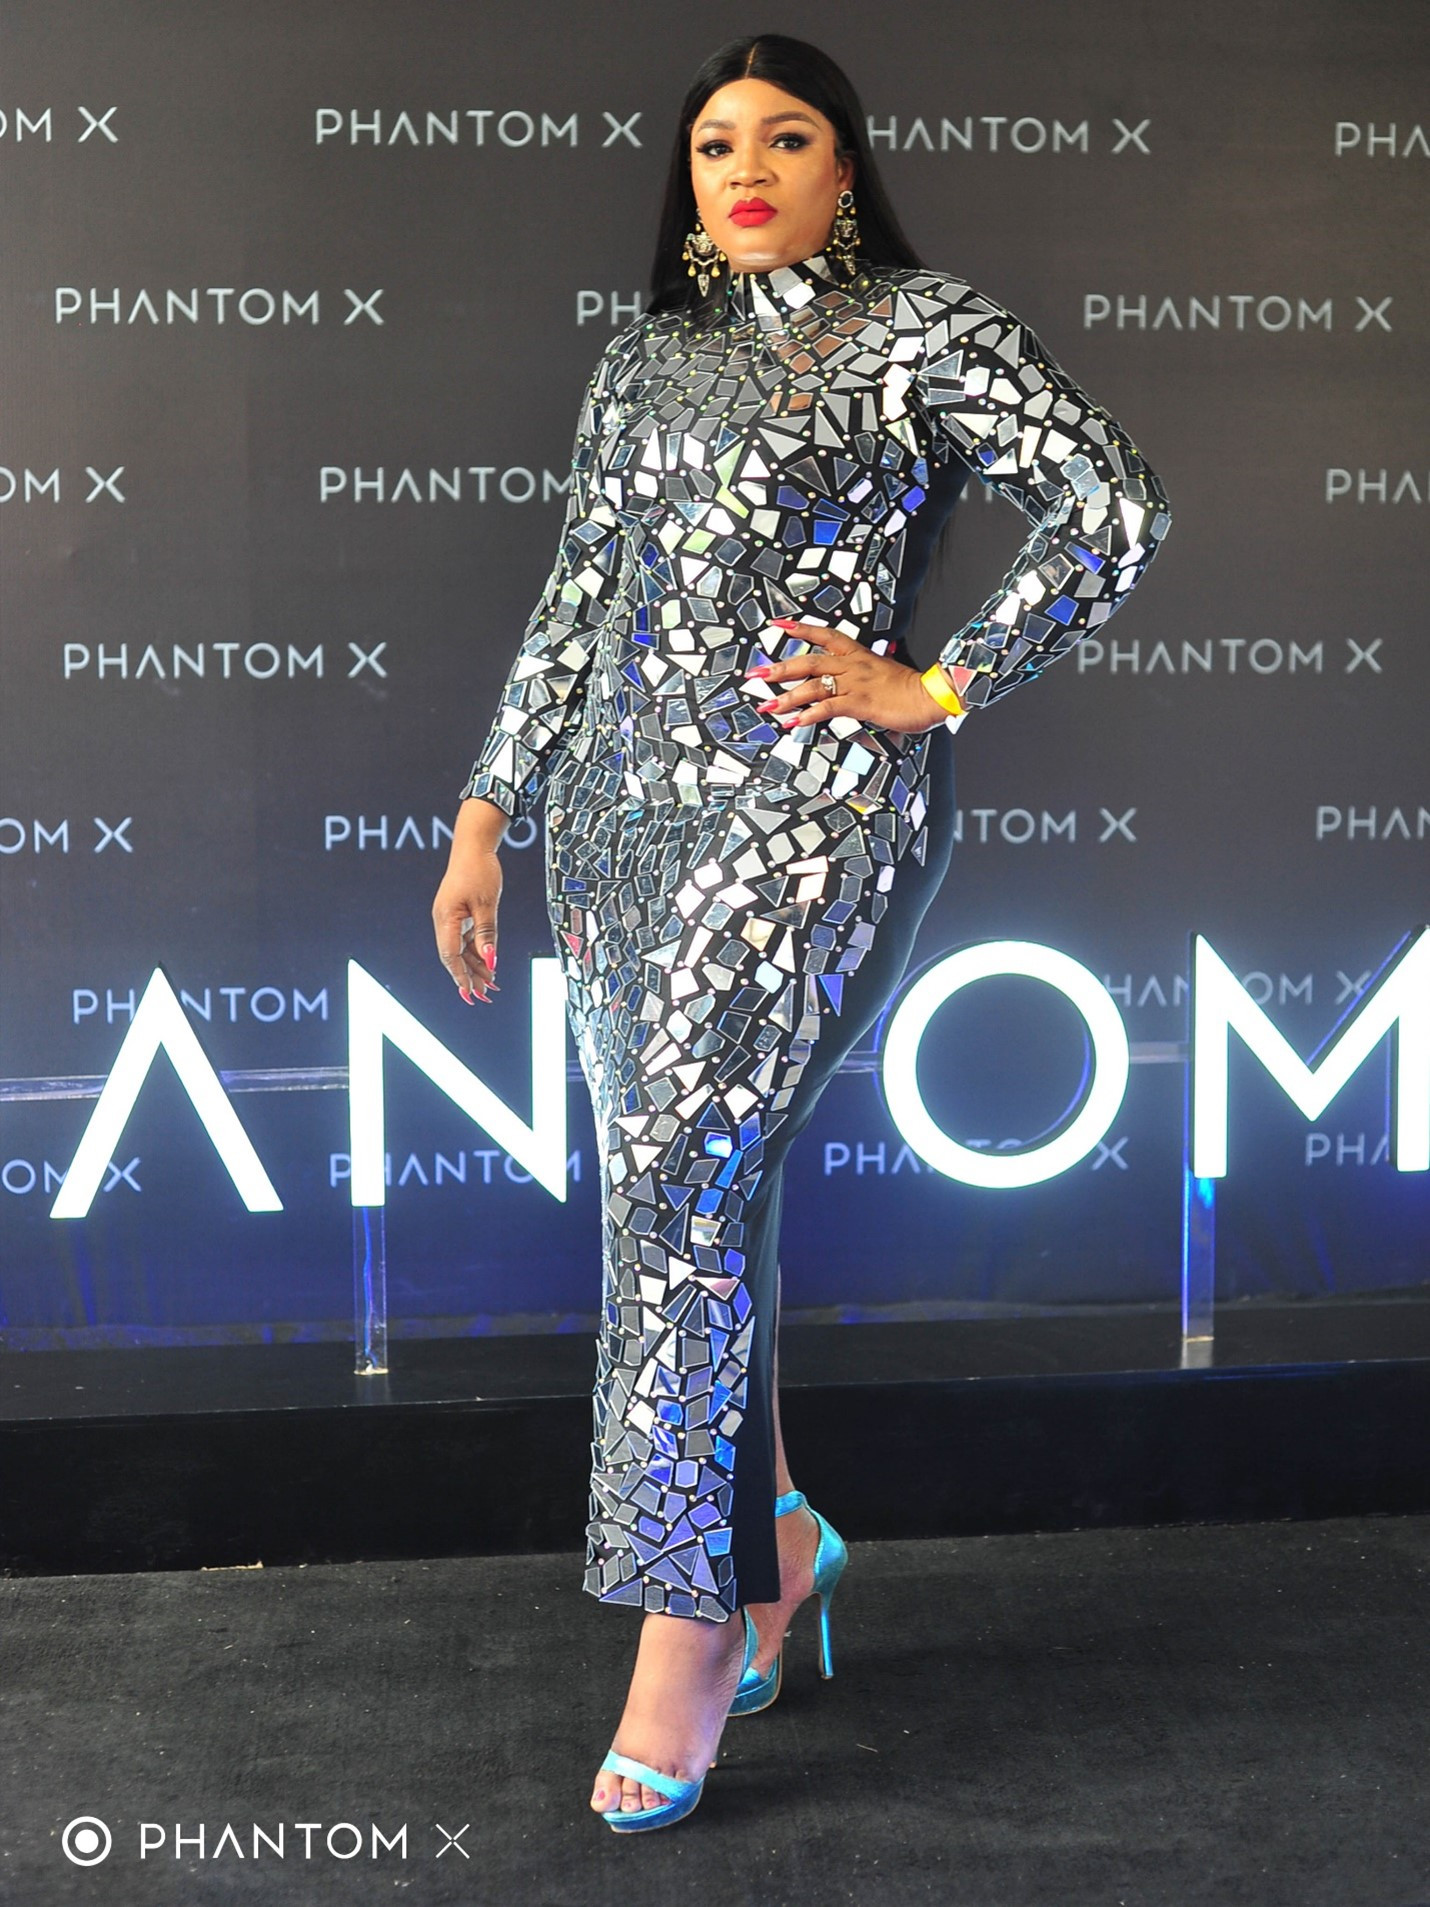 Throwback: How Celebrities Showed Up Dazzling At The Phantom X Launch